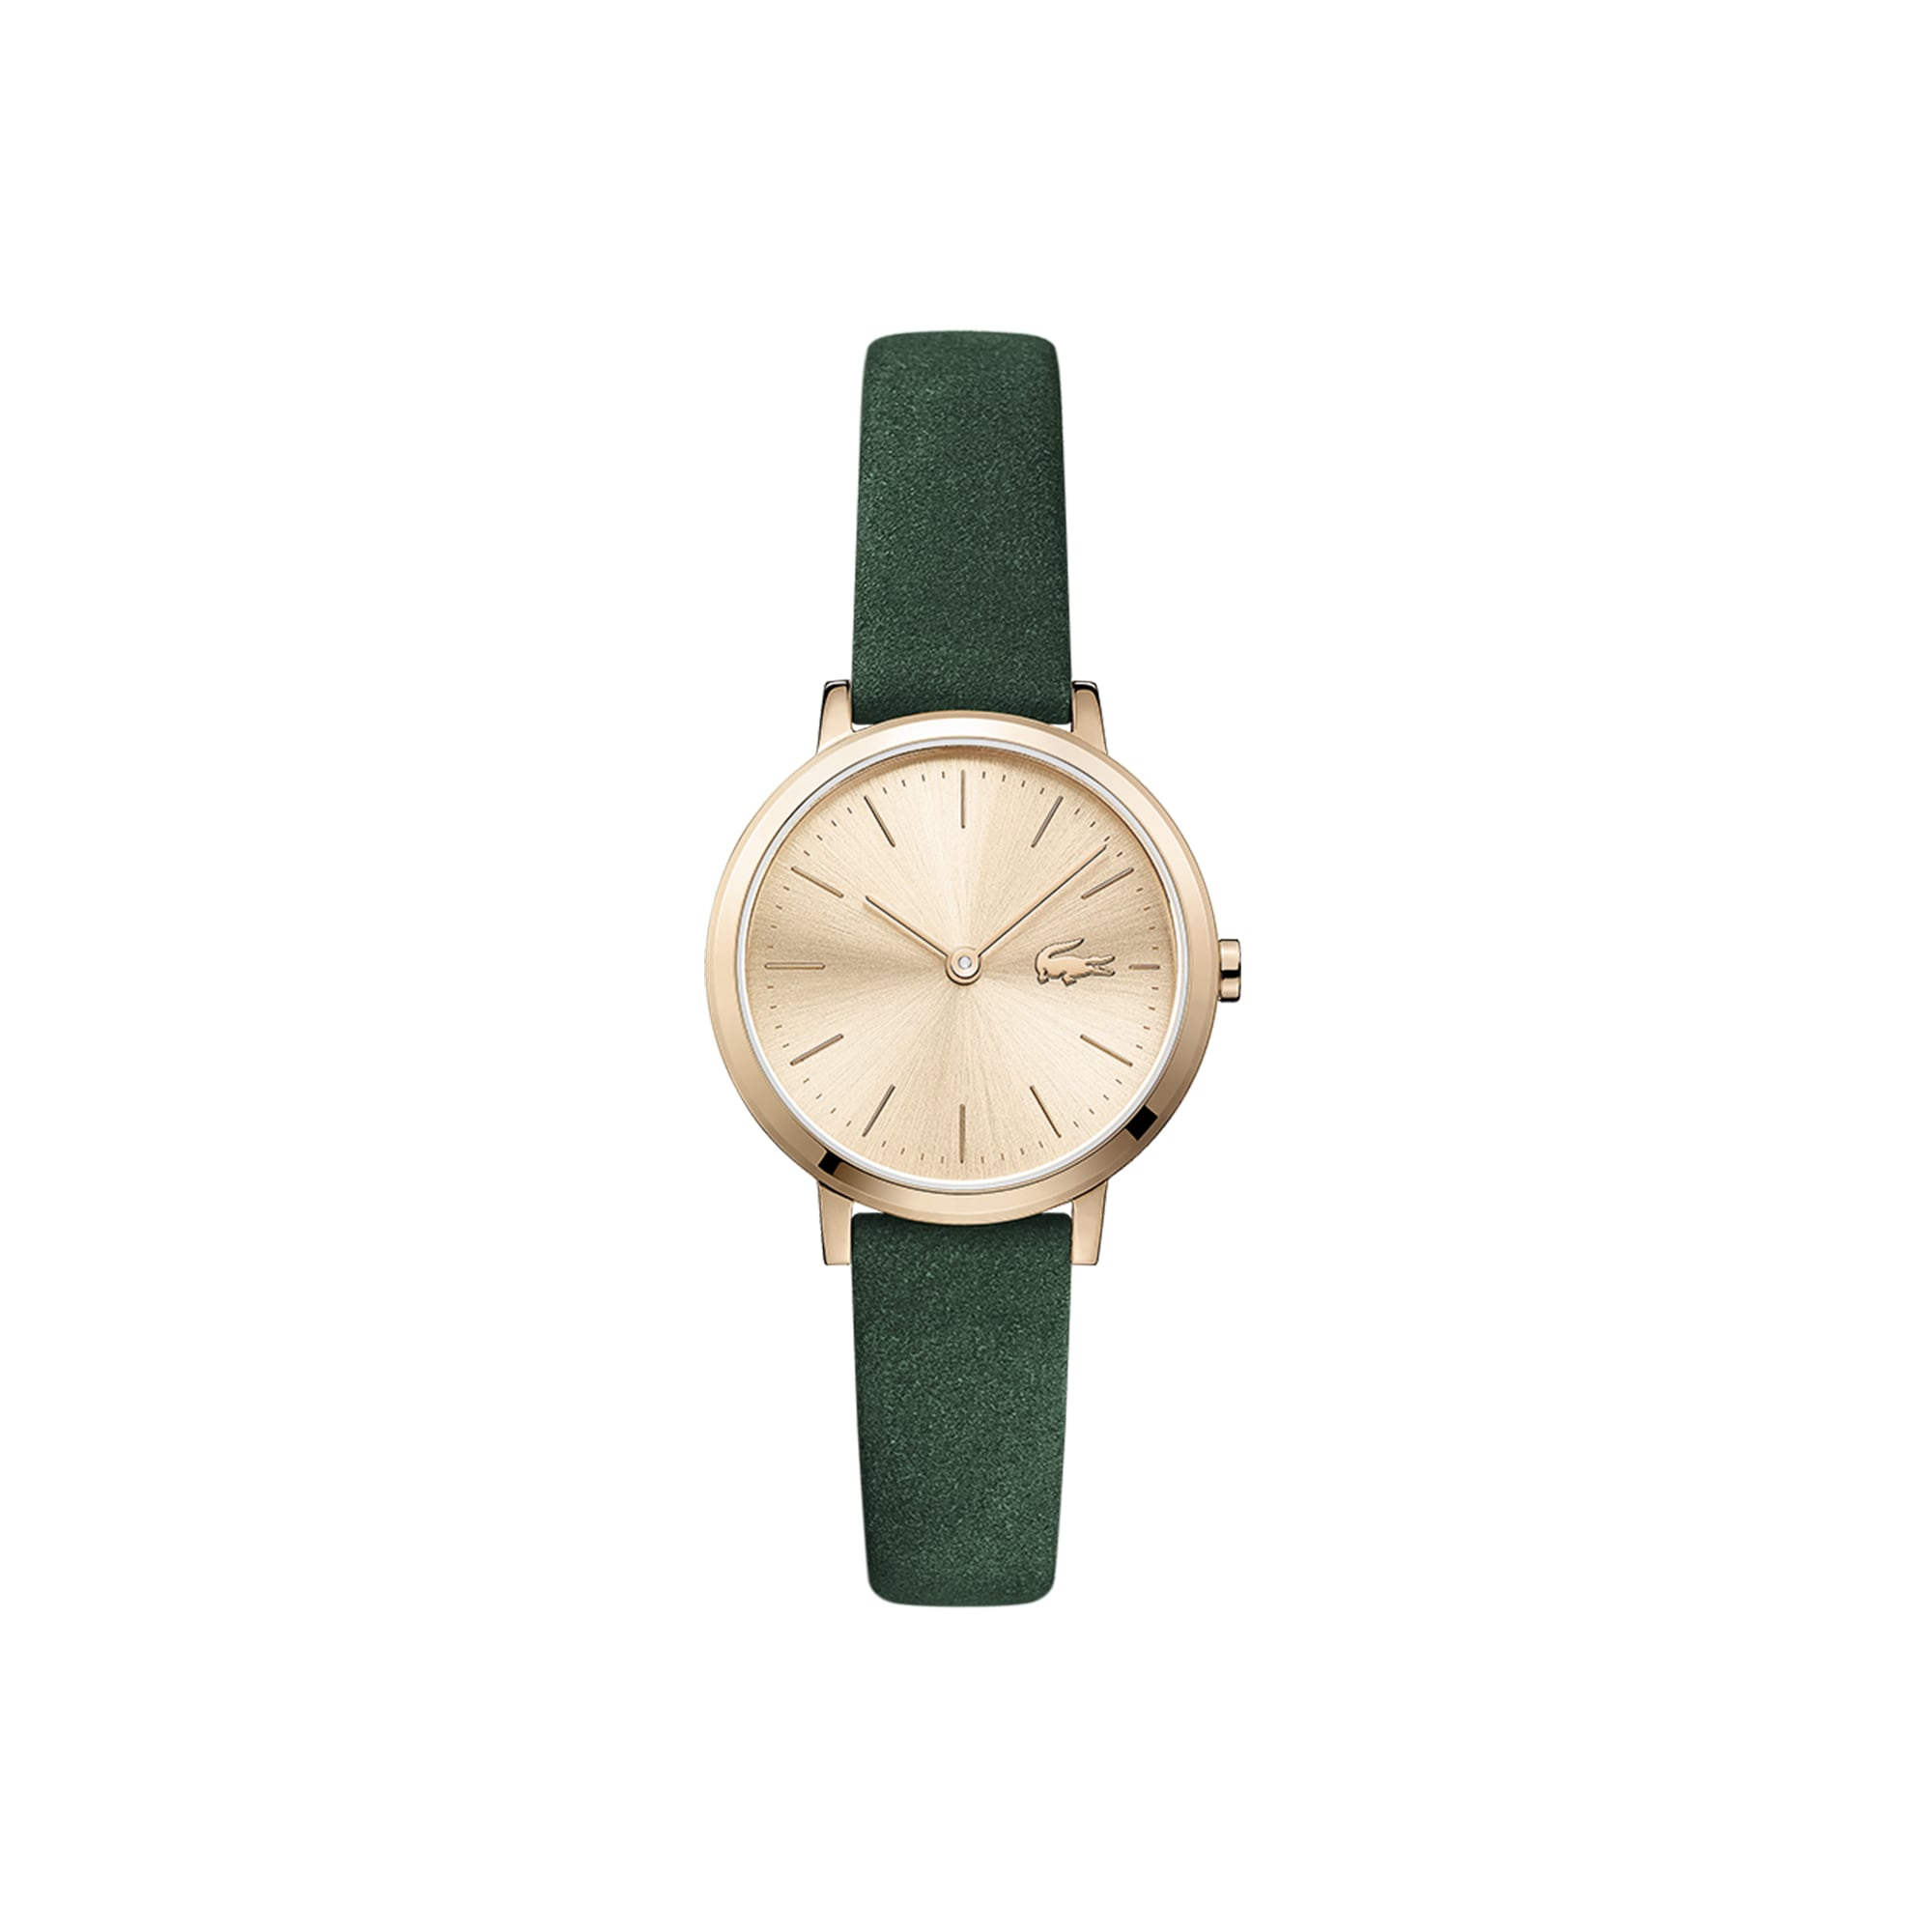 Women's Mini Moon Ultra Slim Watch with Green Suede Leather Strap